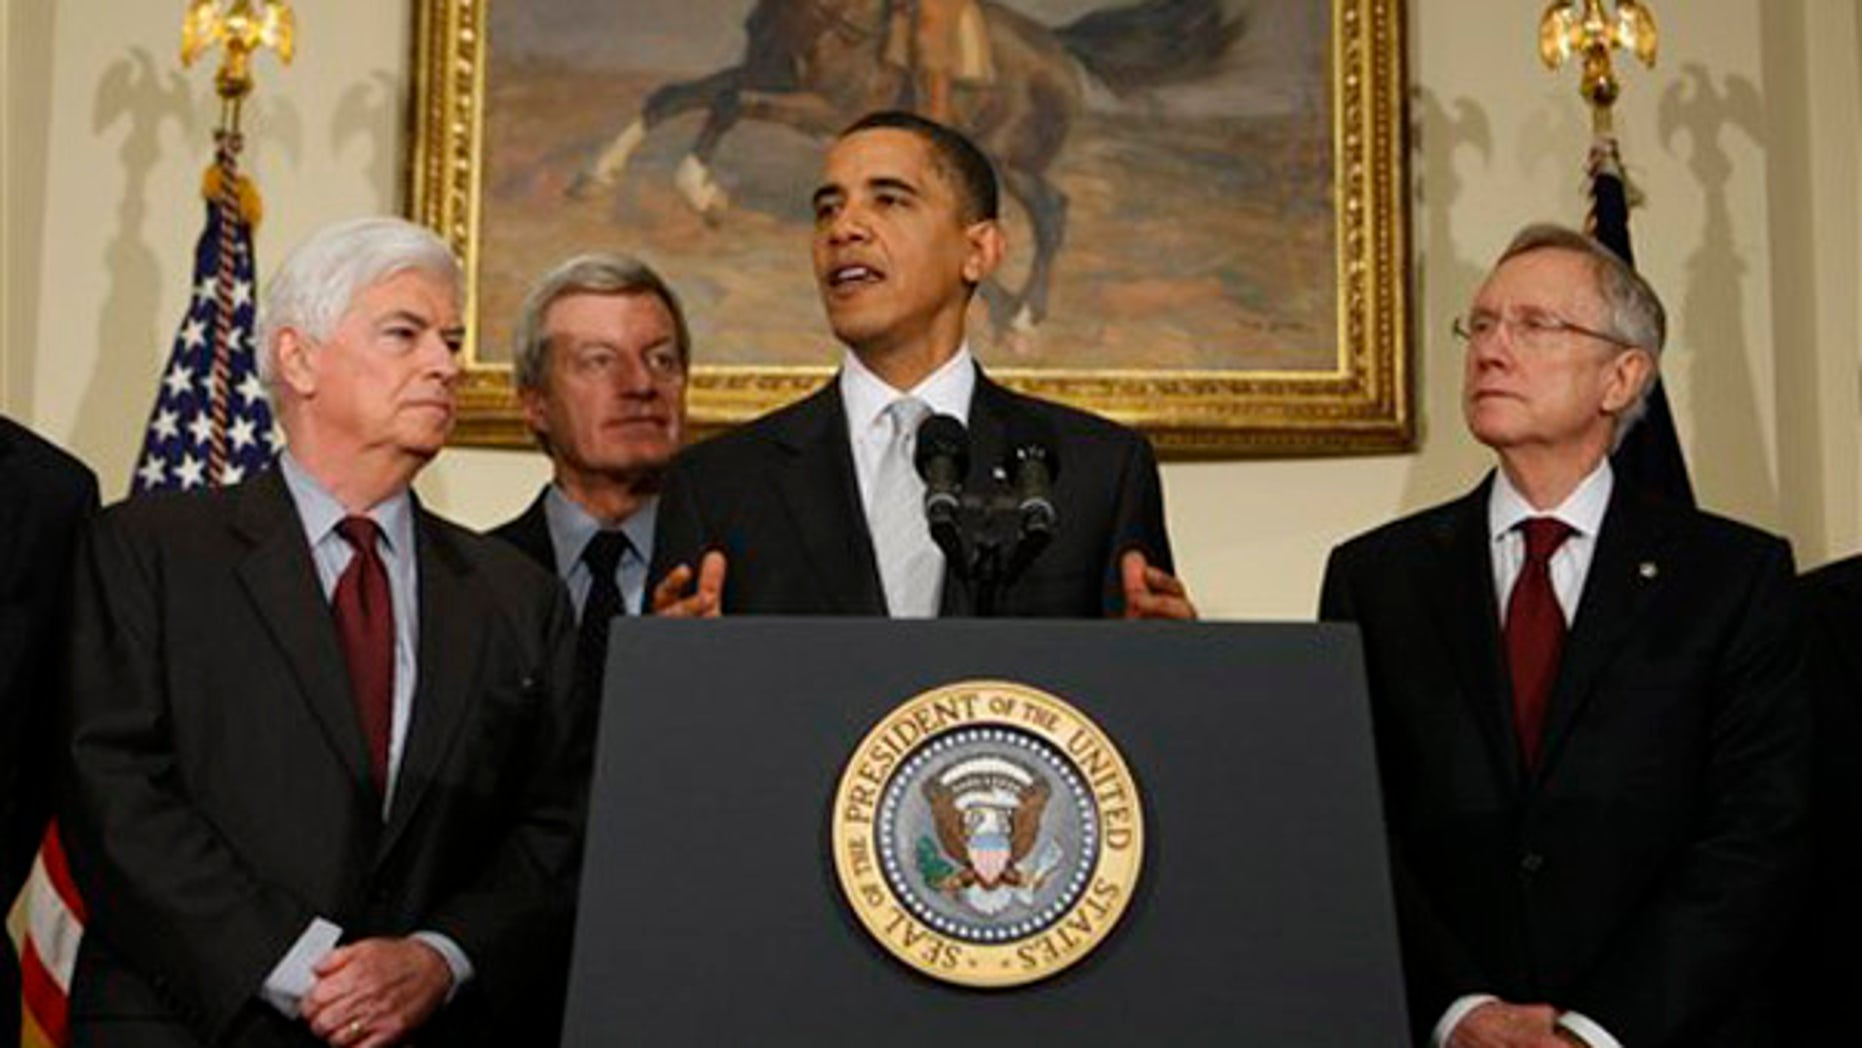 President Obama makes a statement on health care reform after meeting with senators, Tuesday, Dec. 15, 2009, at the White House. (AP)